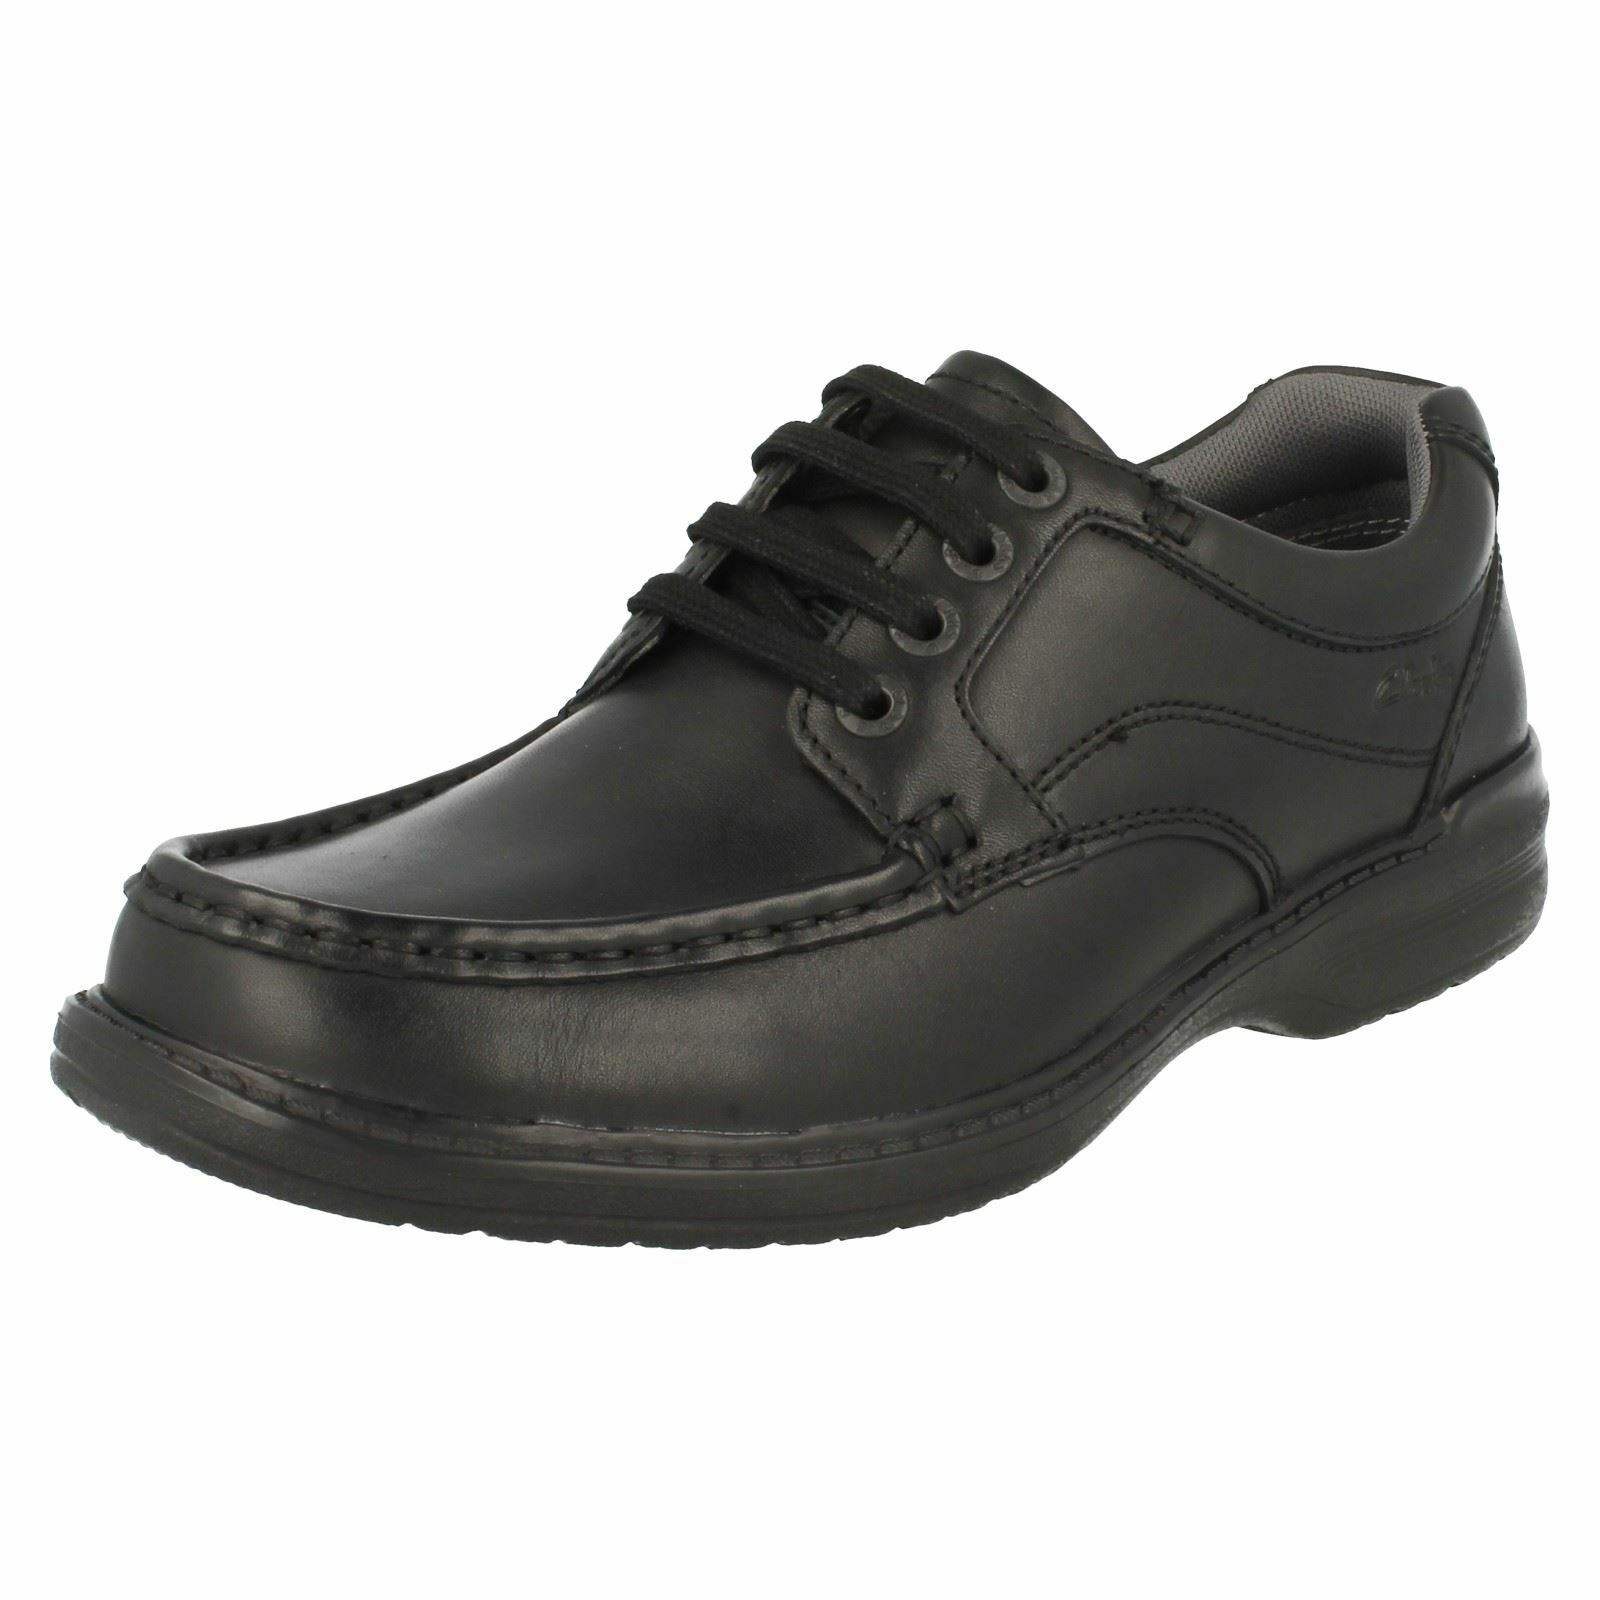 Uomo KEELER Leder WALK H fitting schwarz Leder KEELER Lace up shoe BY Clarks b553f5